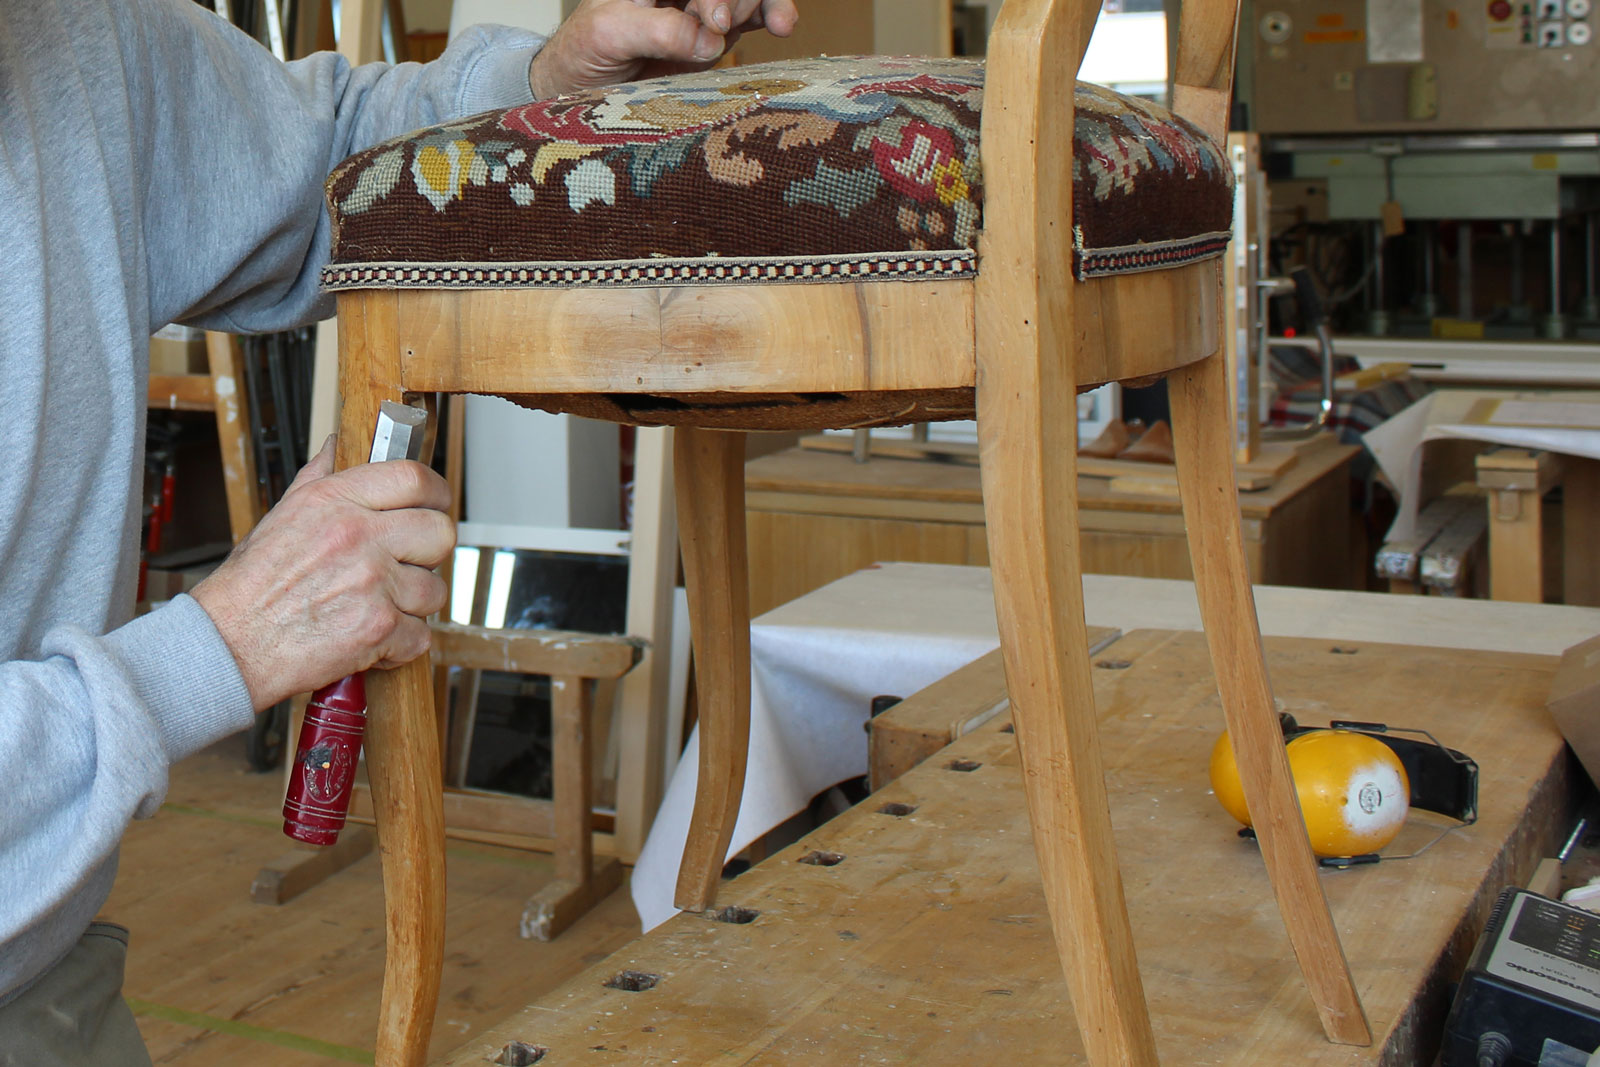 Once the wood is repaired, the upholstery can be reattached.